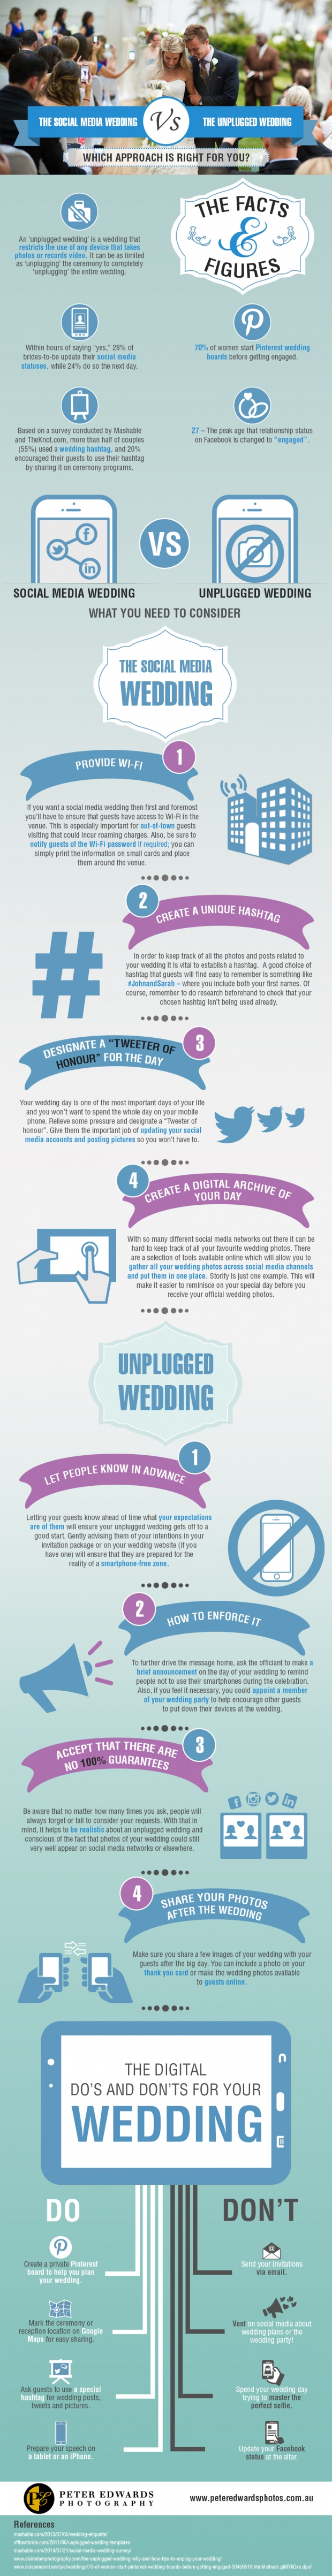 Peter-Edwards-IGSocial_Media_Vs_Unplugged_Weddings